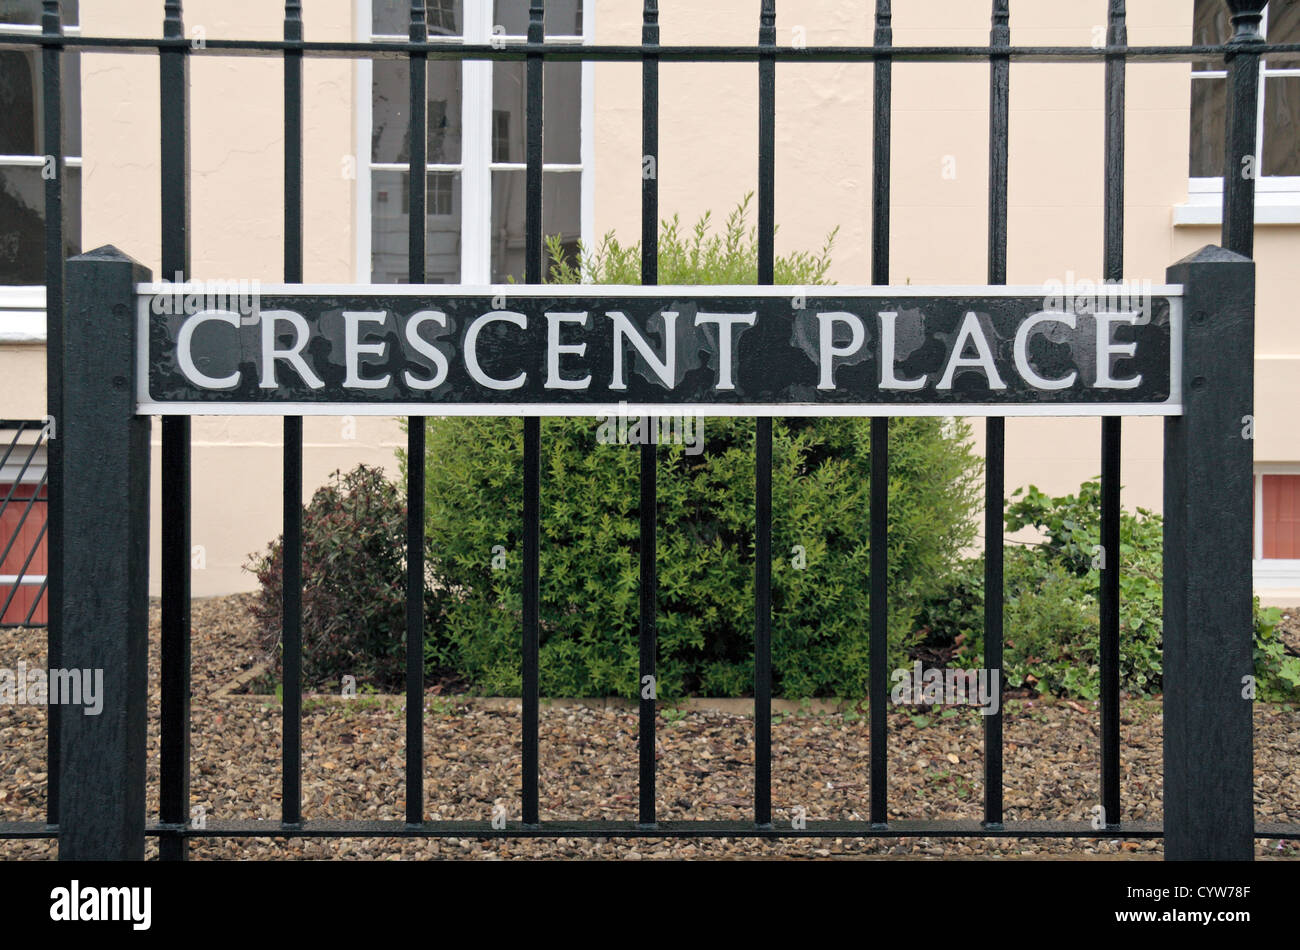 Road sign for Crescent Place in Cheltenham, Gloucestershire, England. - Stock Image